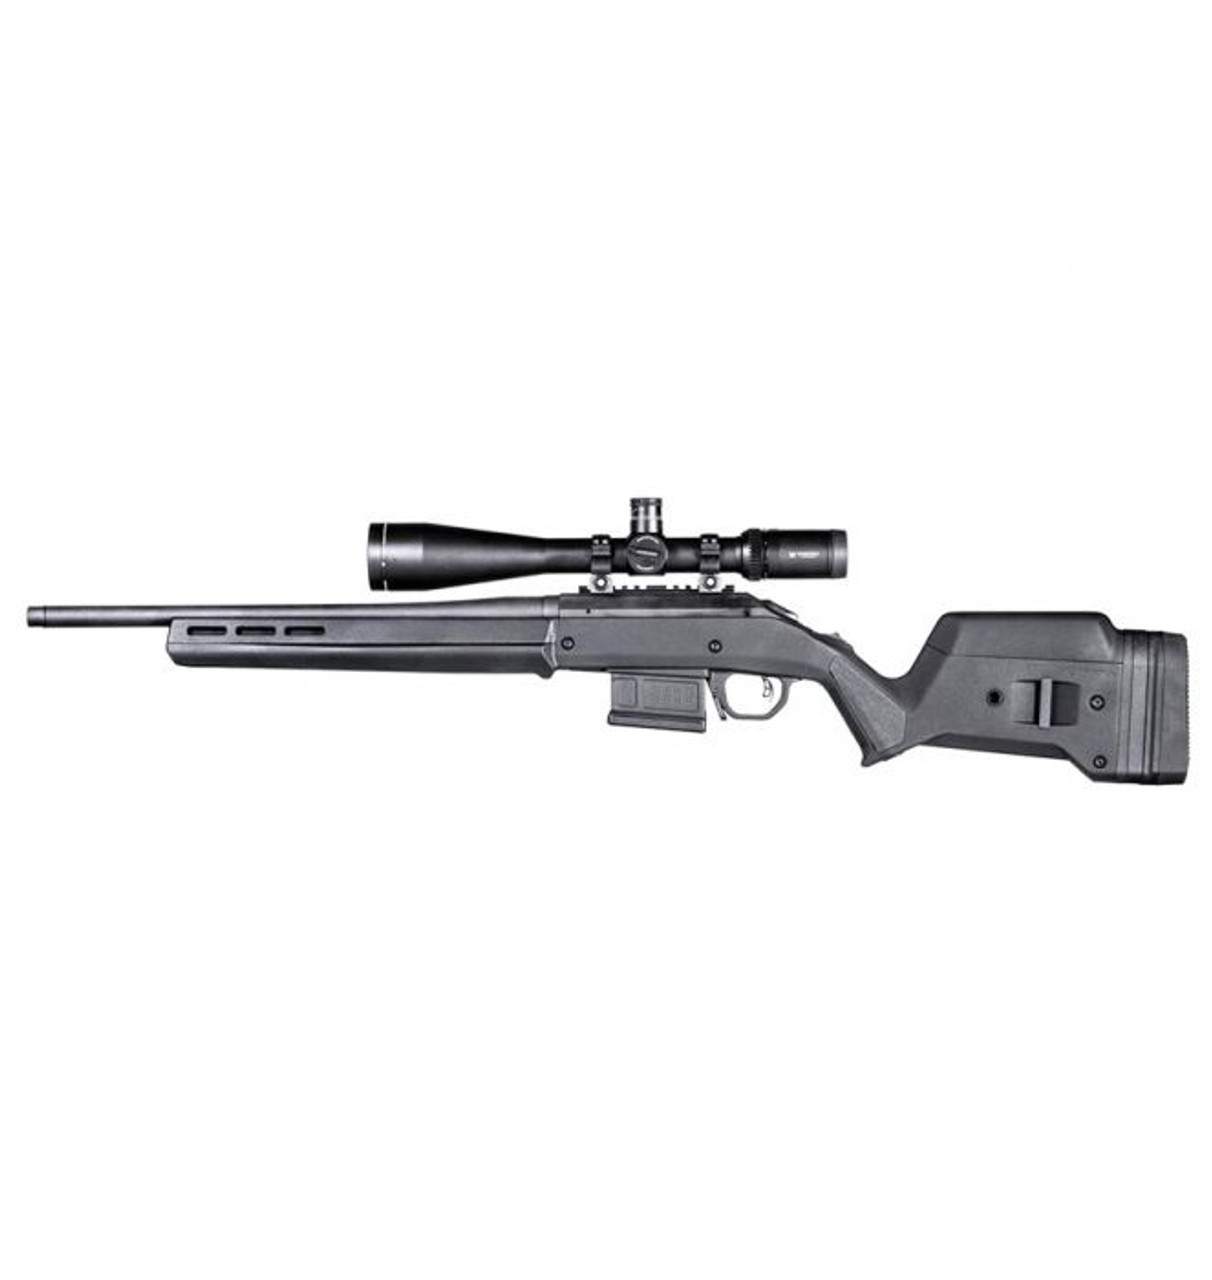 Magpul Hunter/Ruger American Short Action Stock, GRY